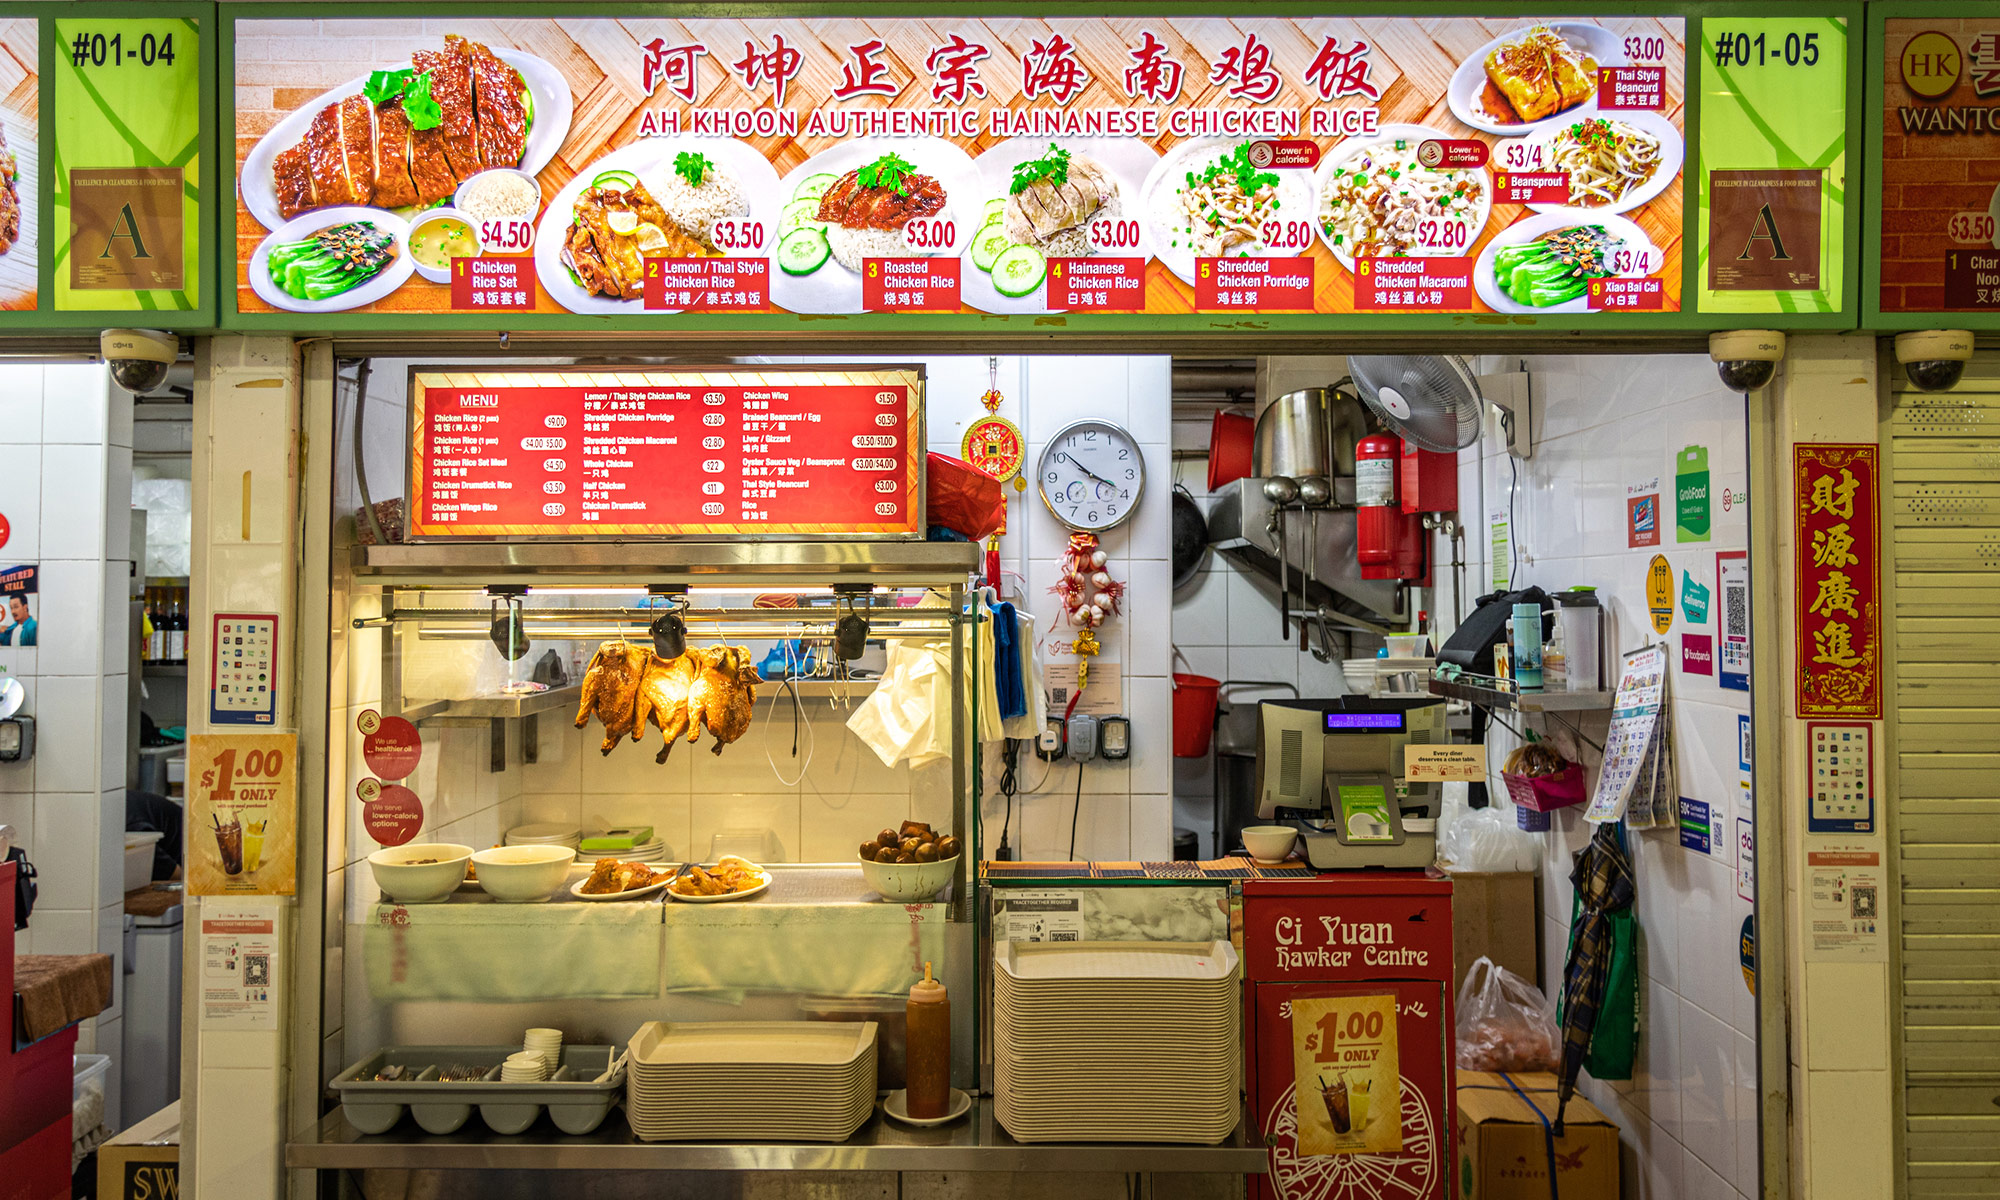 Owner of Ah Koon Authentic Hainanesen Chicken Rice, available on WhyQ for delivery.